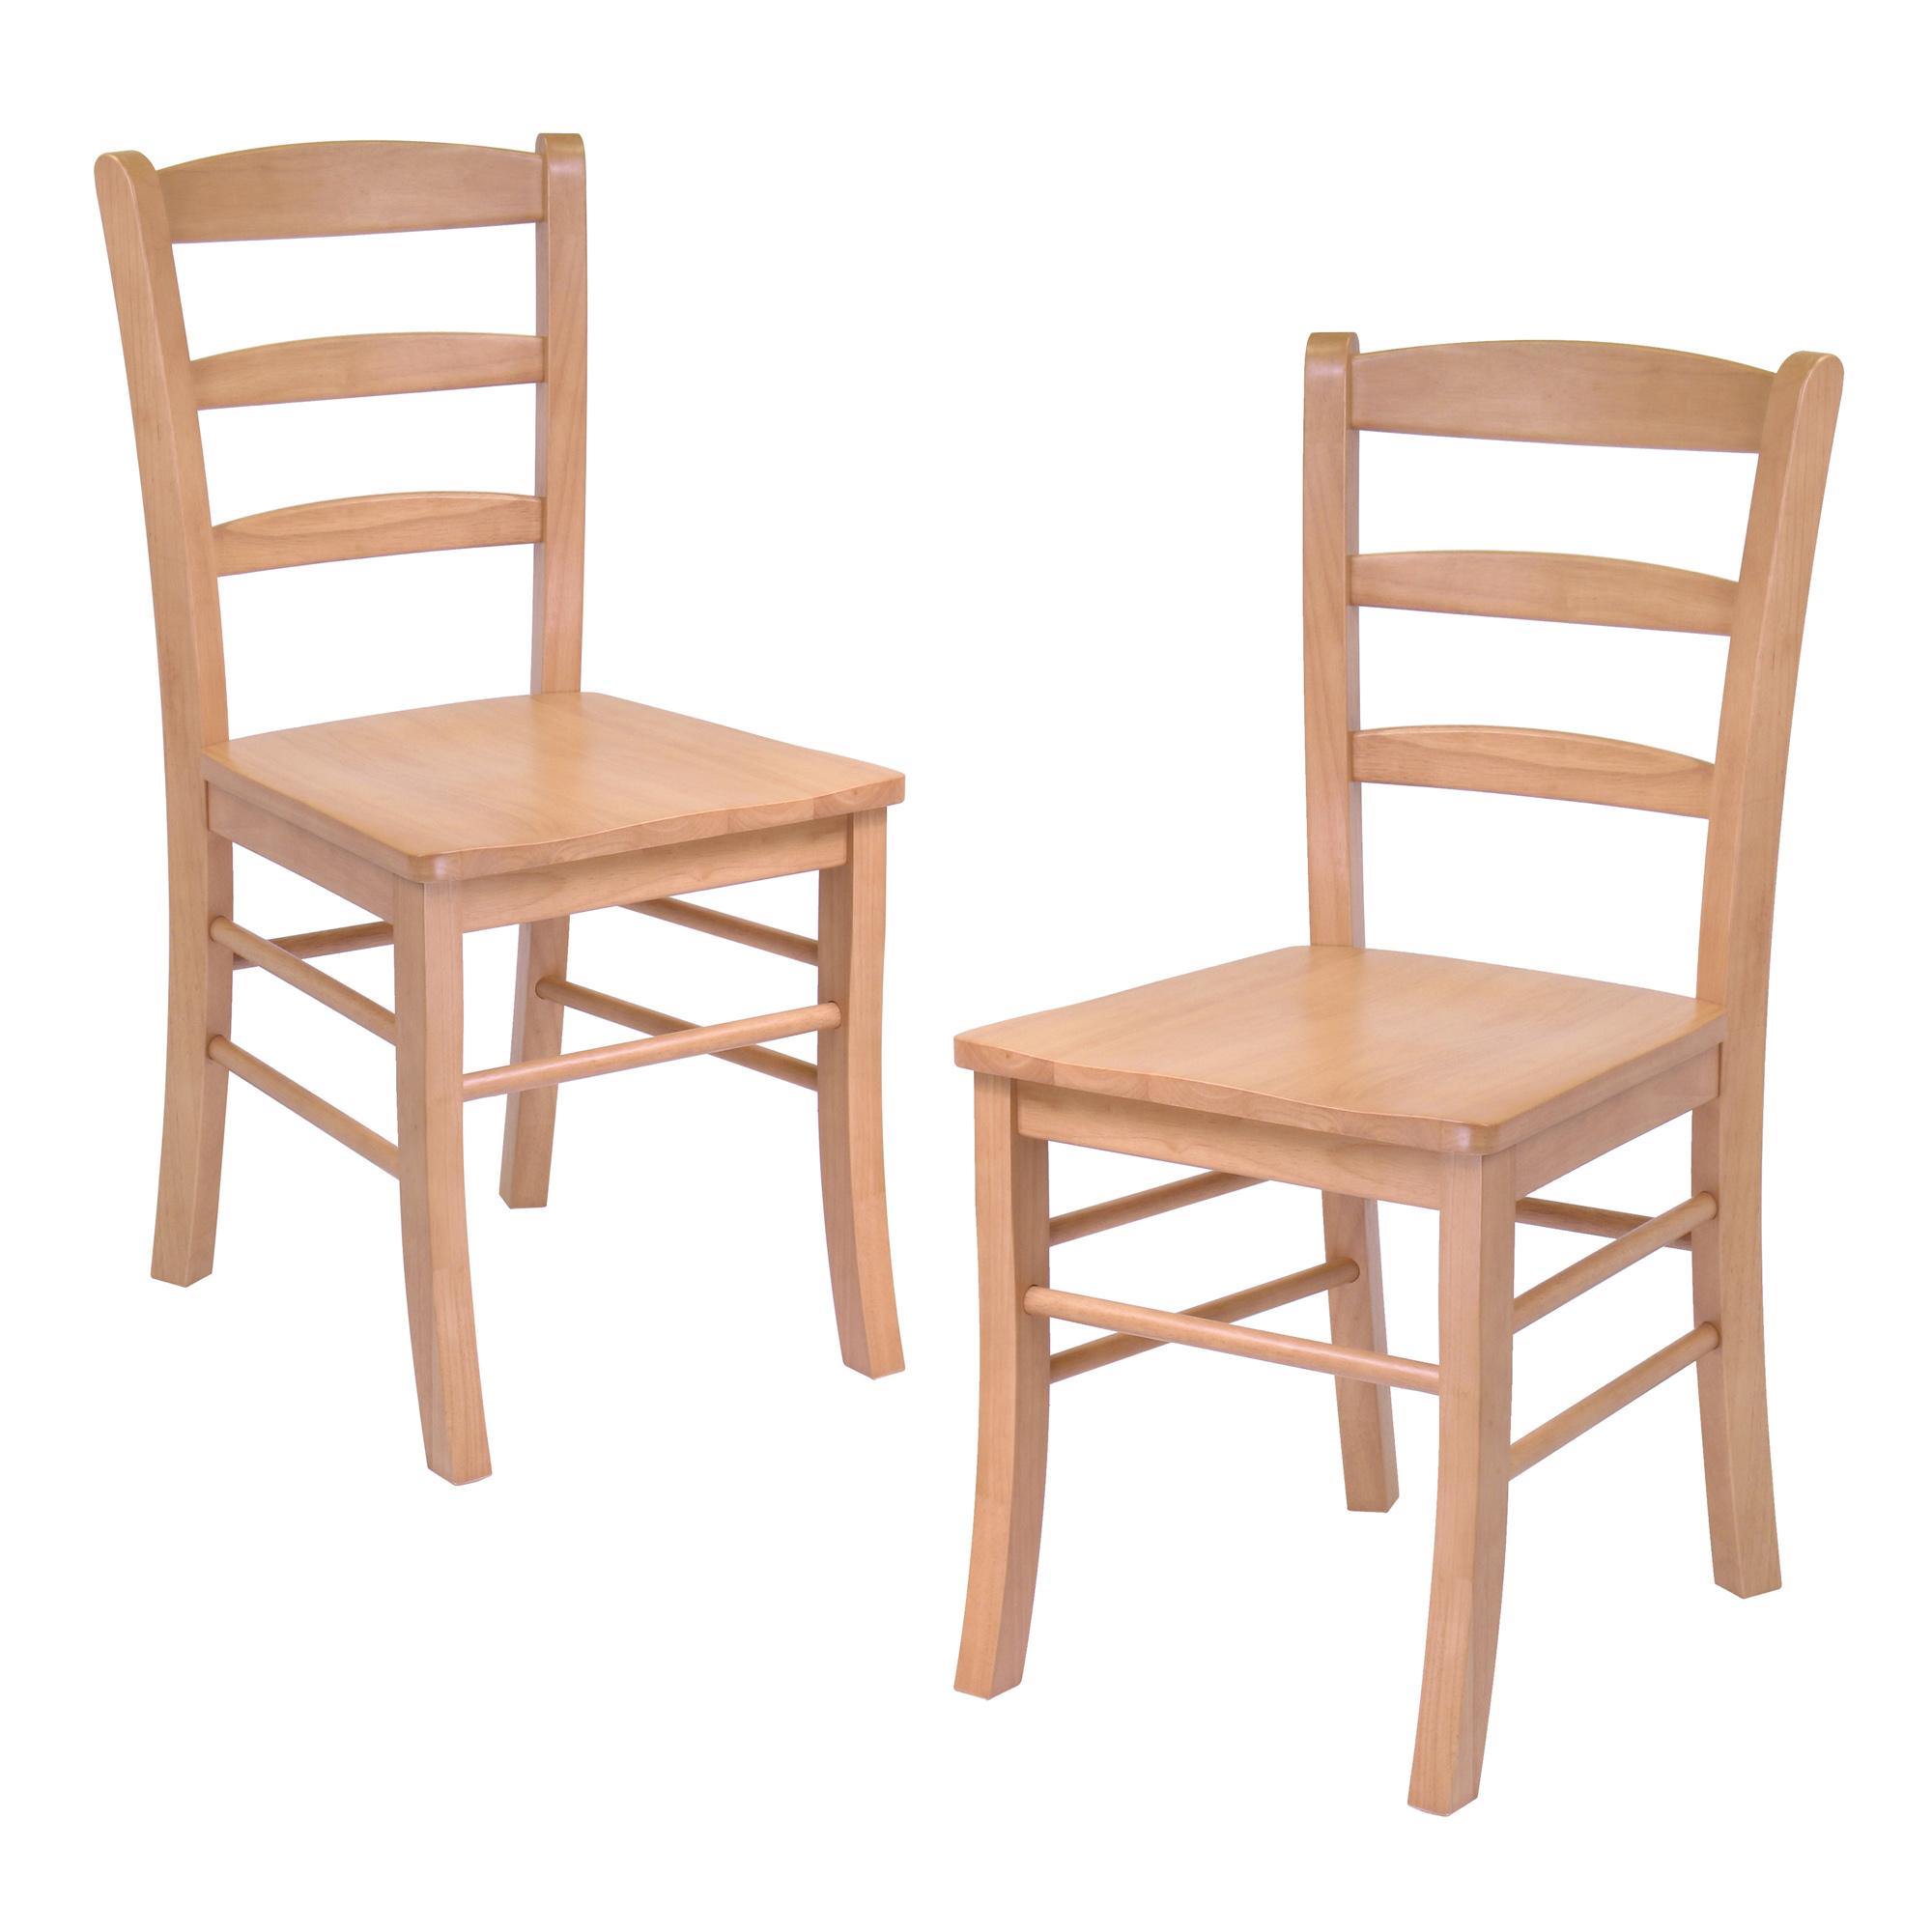 Chair Wooden Hannah Dining Wood Side Chairs In Light Oak Finish Set Of